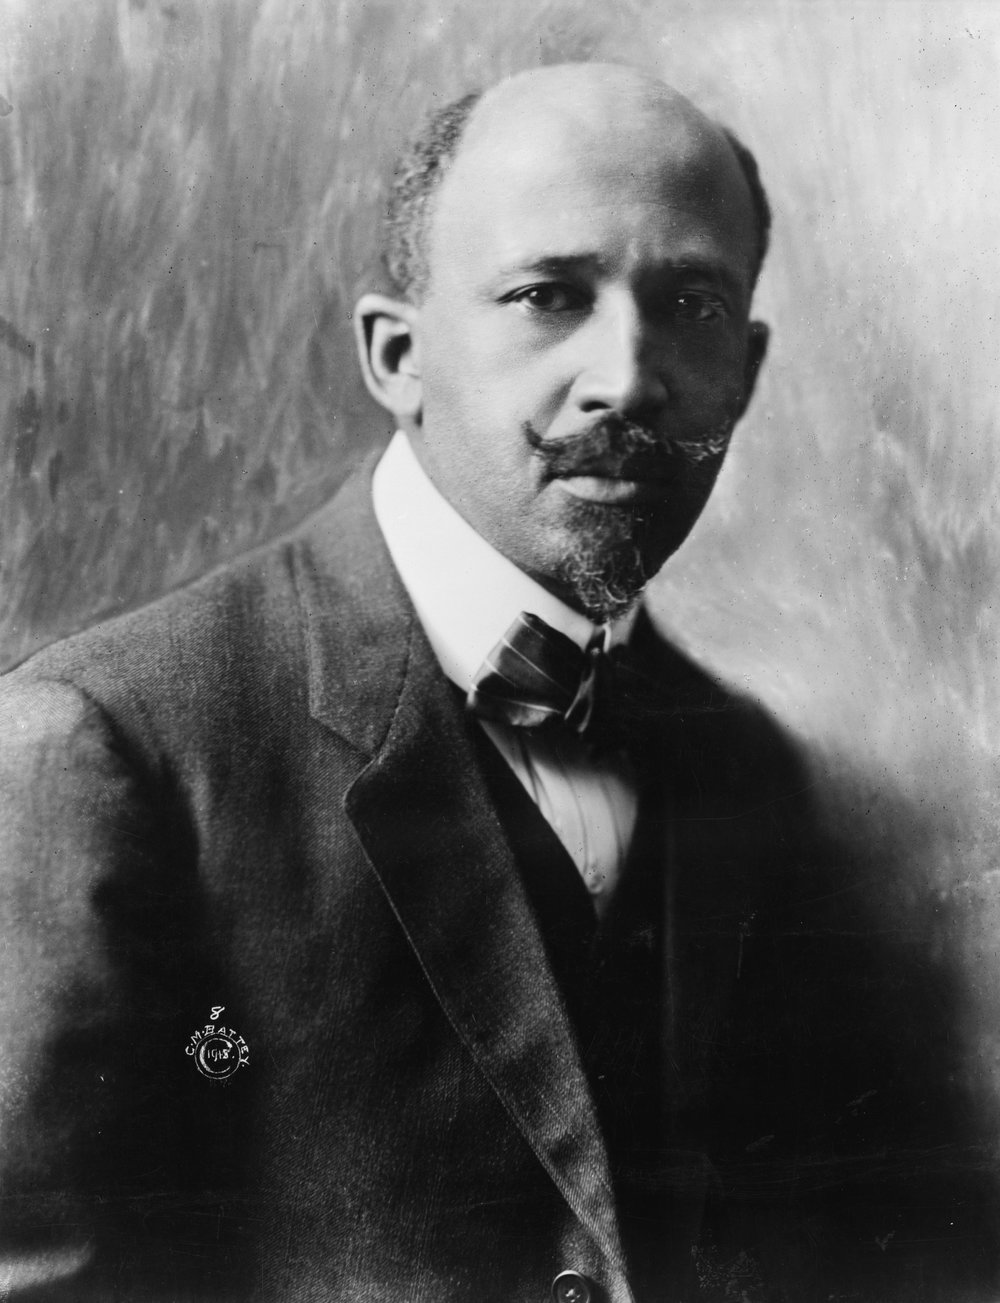 W. E. B. Du Bois (1868 – 1963), co-founder of the National Association for the Advancement of Colored People (NAACP), in 1918.   Source